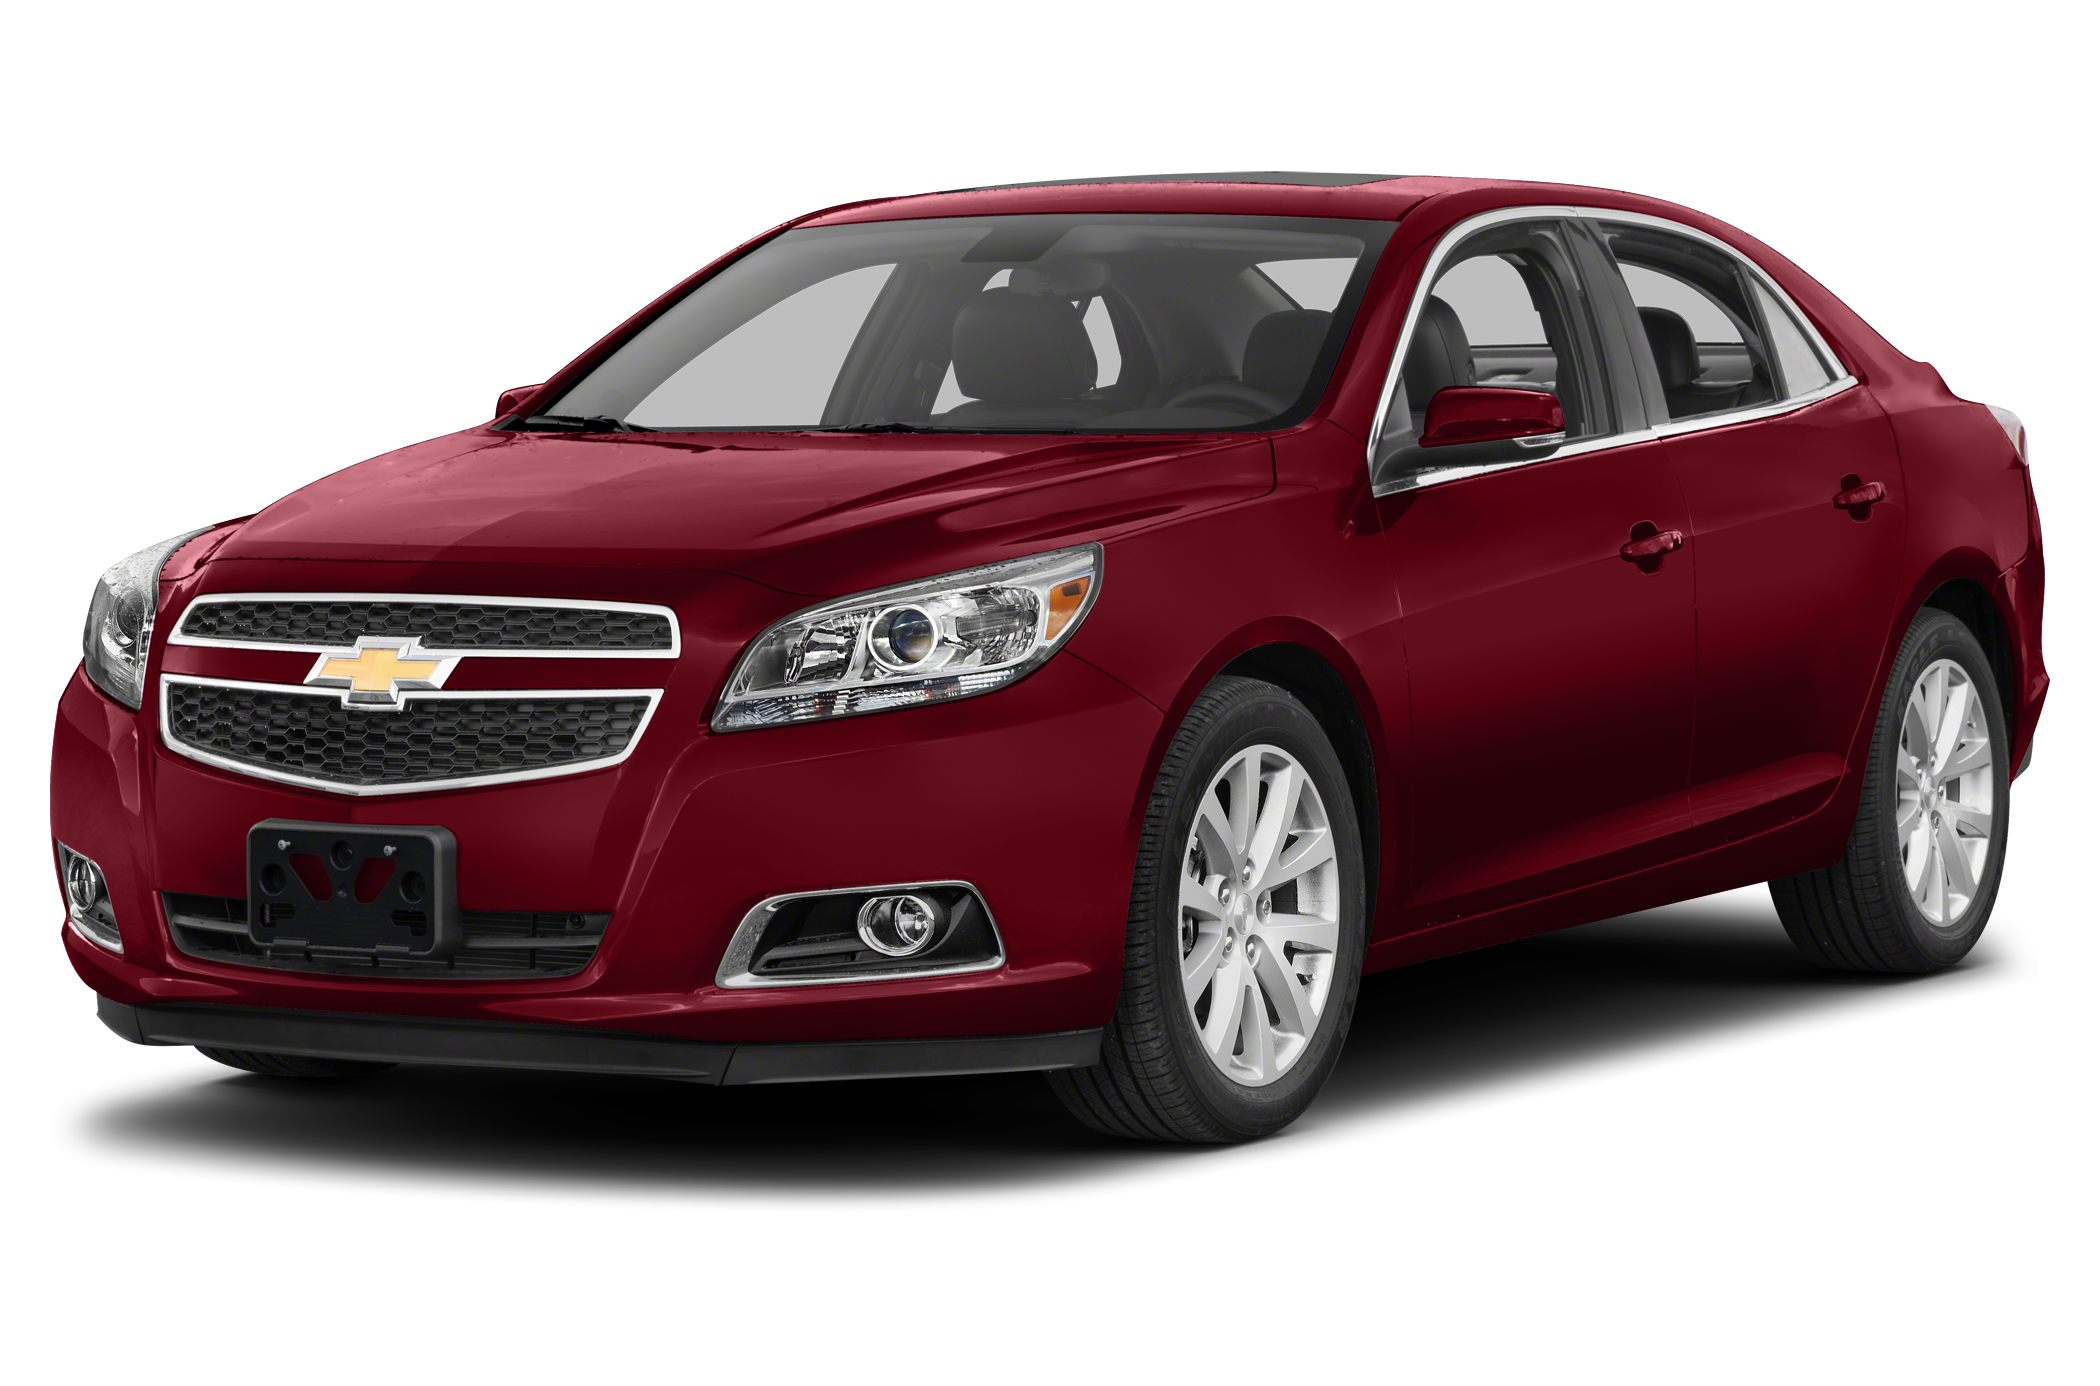 2013 Chevrolet Malibu 1LS Sedan for sale in Porterville for $16,250 with 28,968 miles.